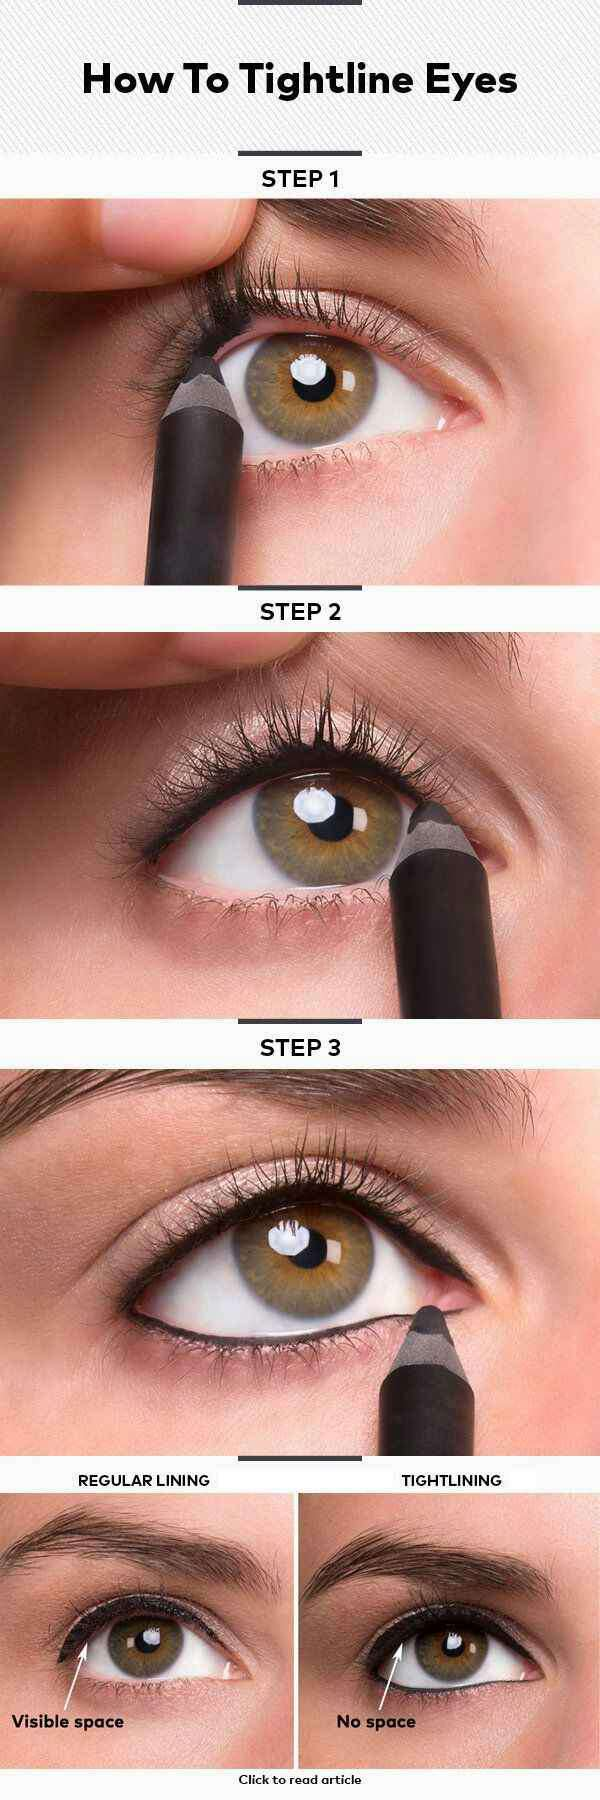 23. Or, you could tightline your eyes instead. The biggest difference between regular lining and tightlining is the visible space of eyelid between your lashes and your eye.